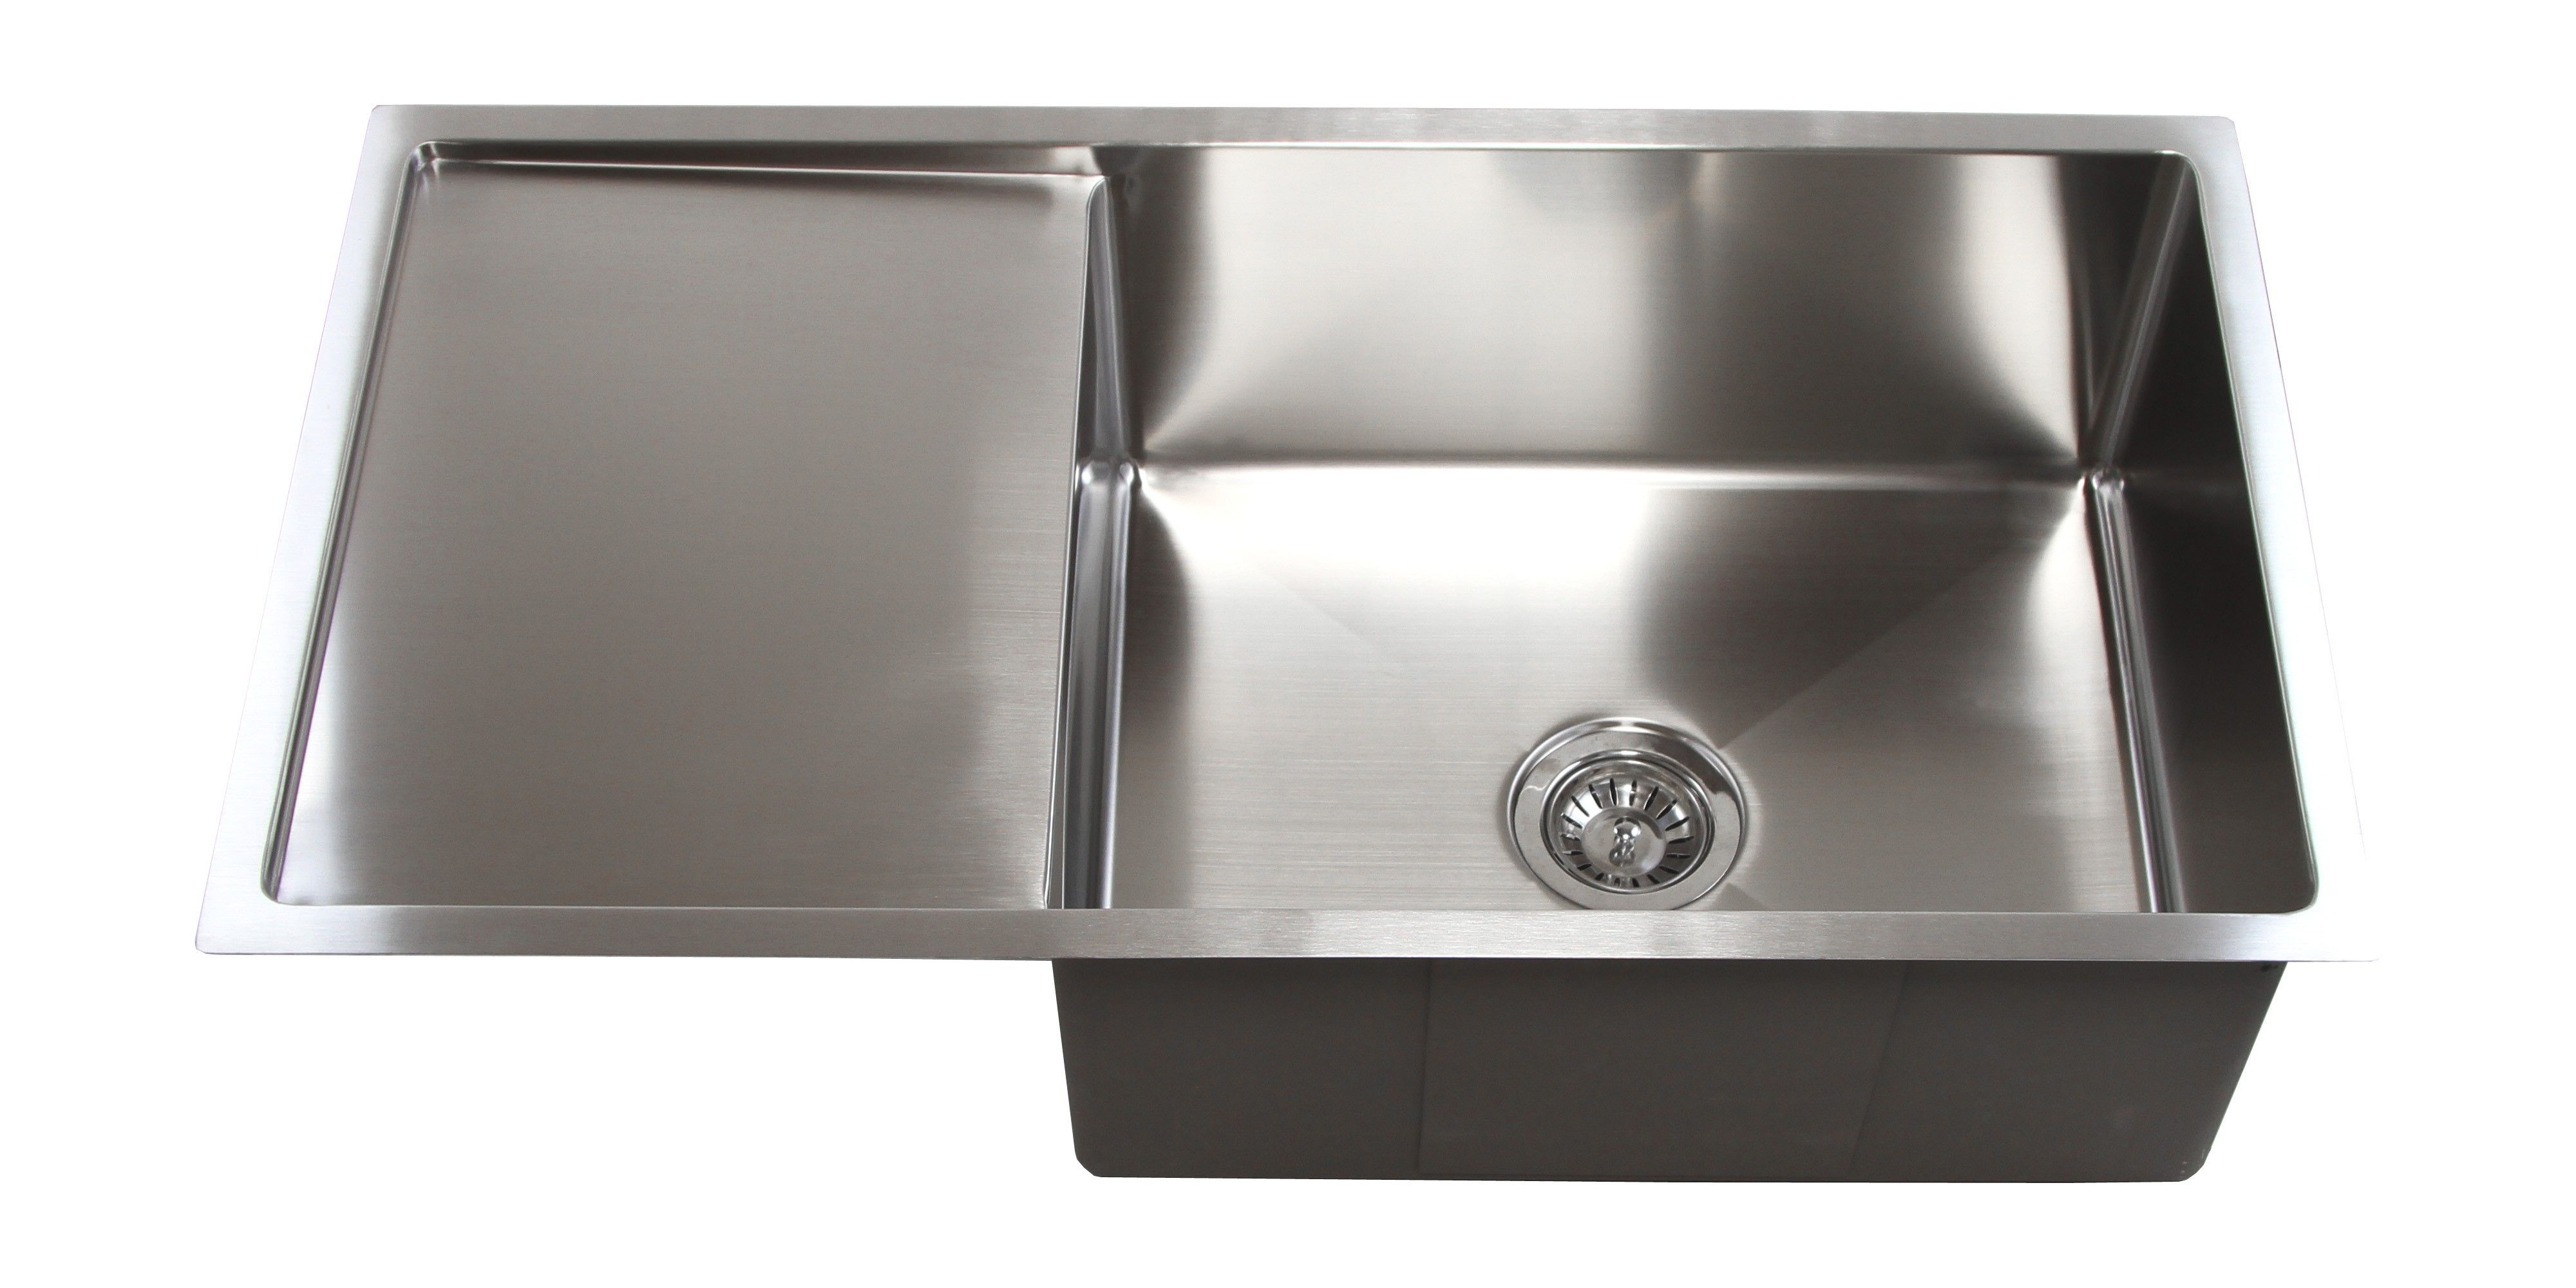 36 Inch Stainless Steel Radius Design Undermount